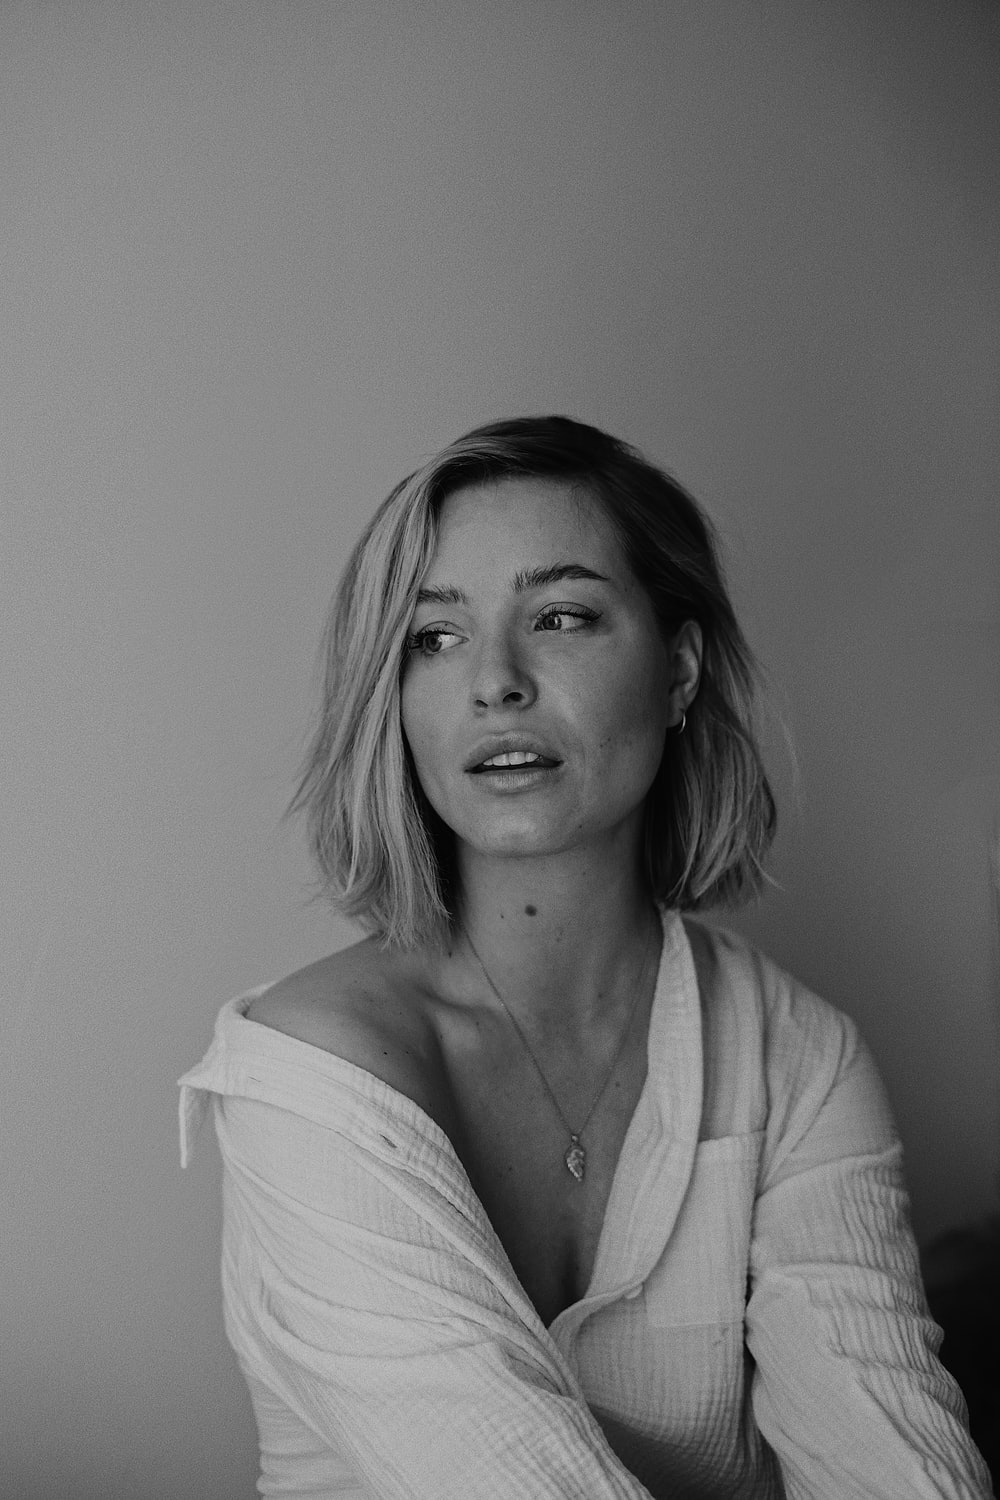 woman in white cardigan and white shirt